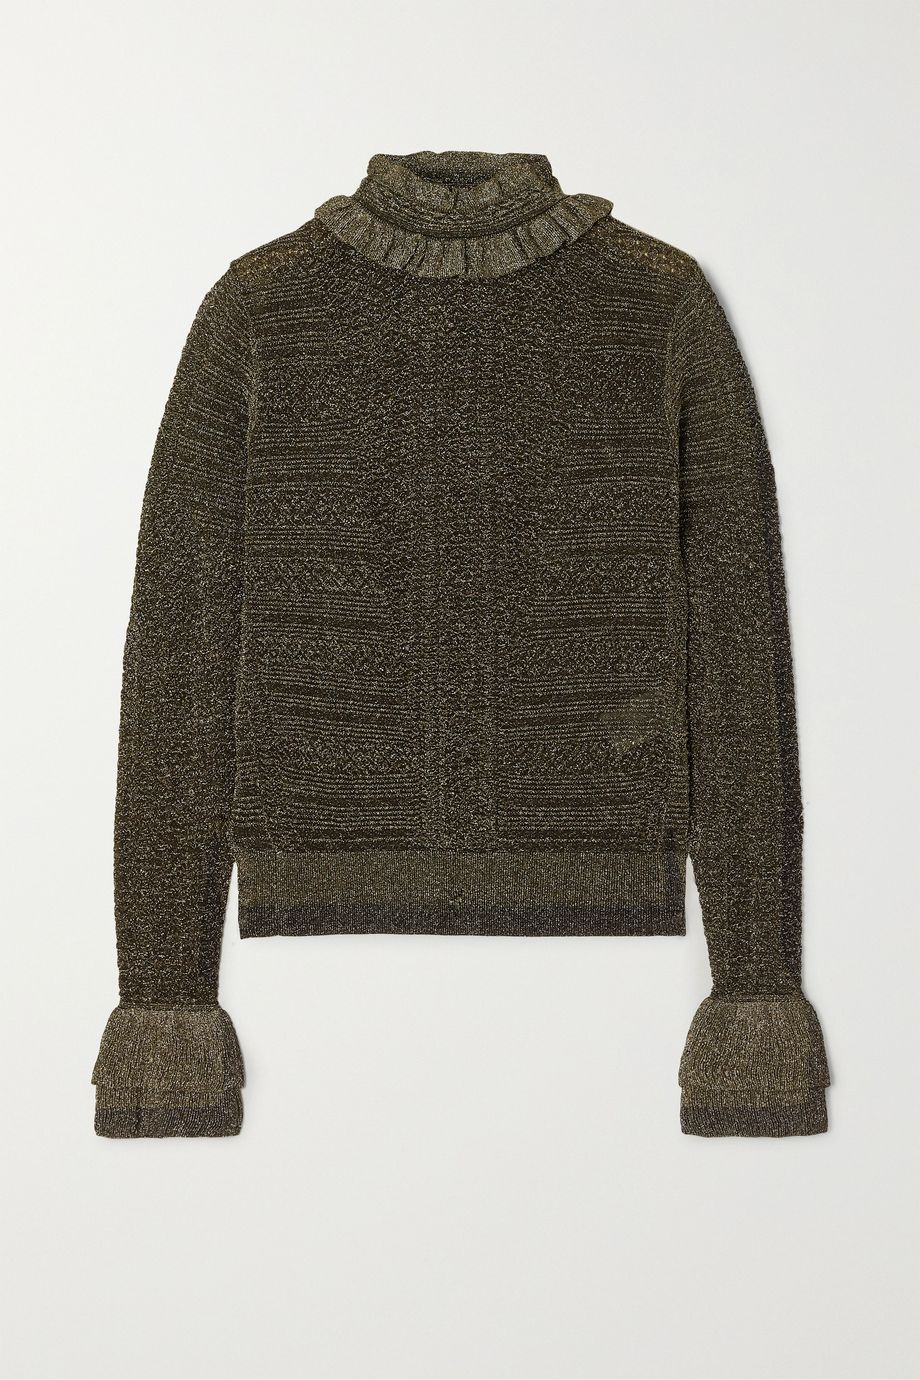 Chloé Ruffled metallic ribbed-knit sweater